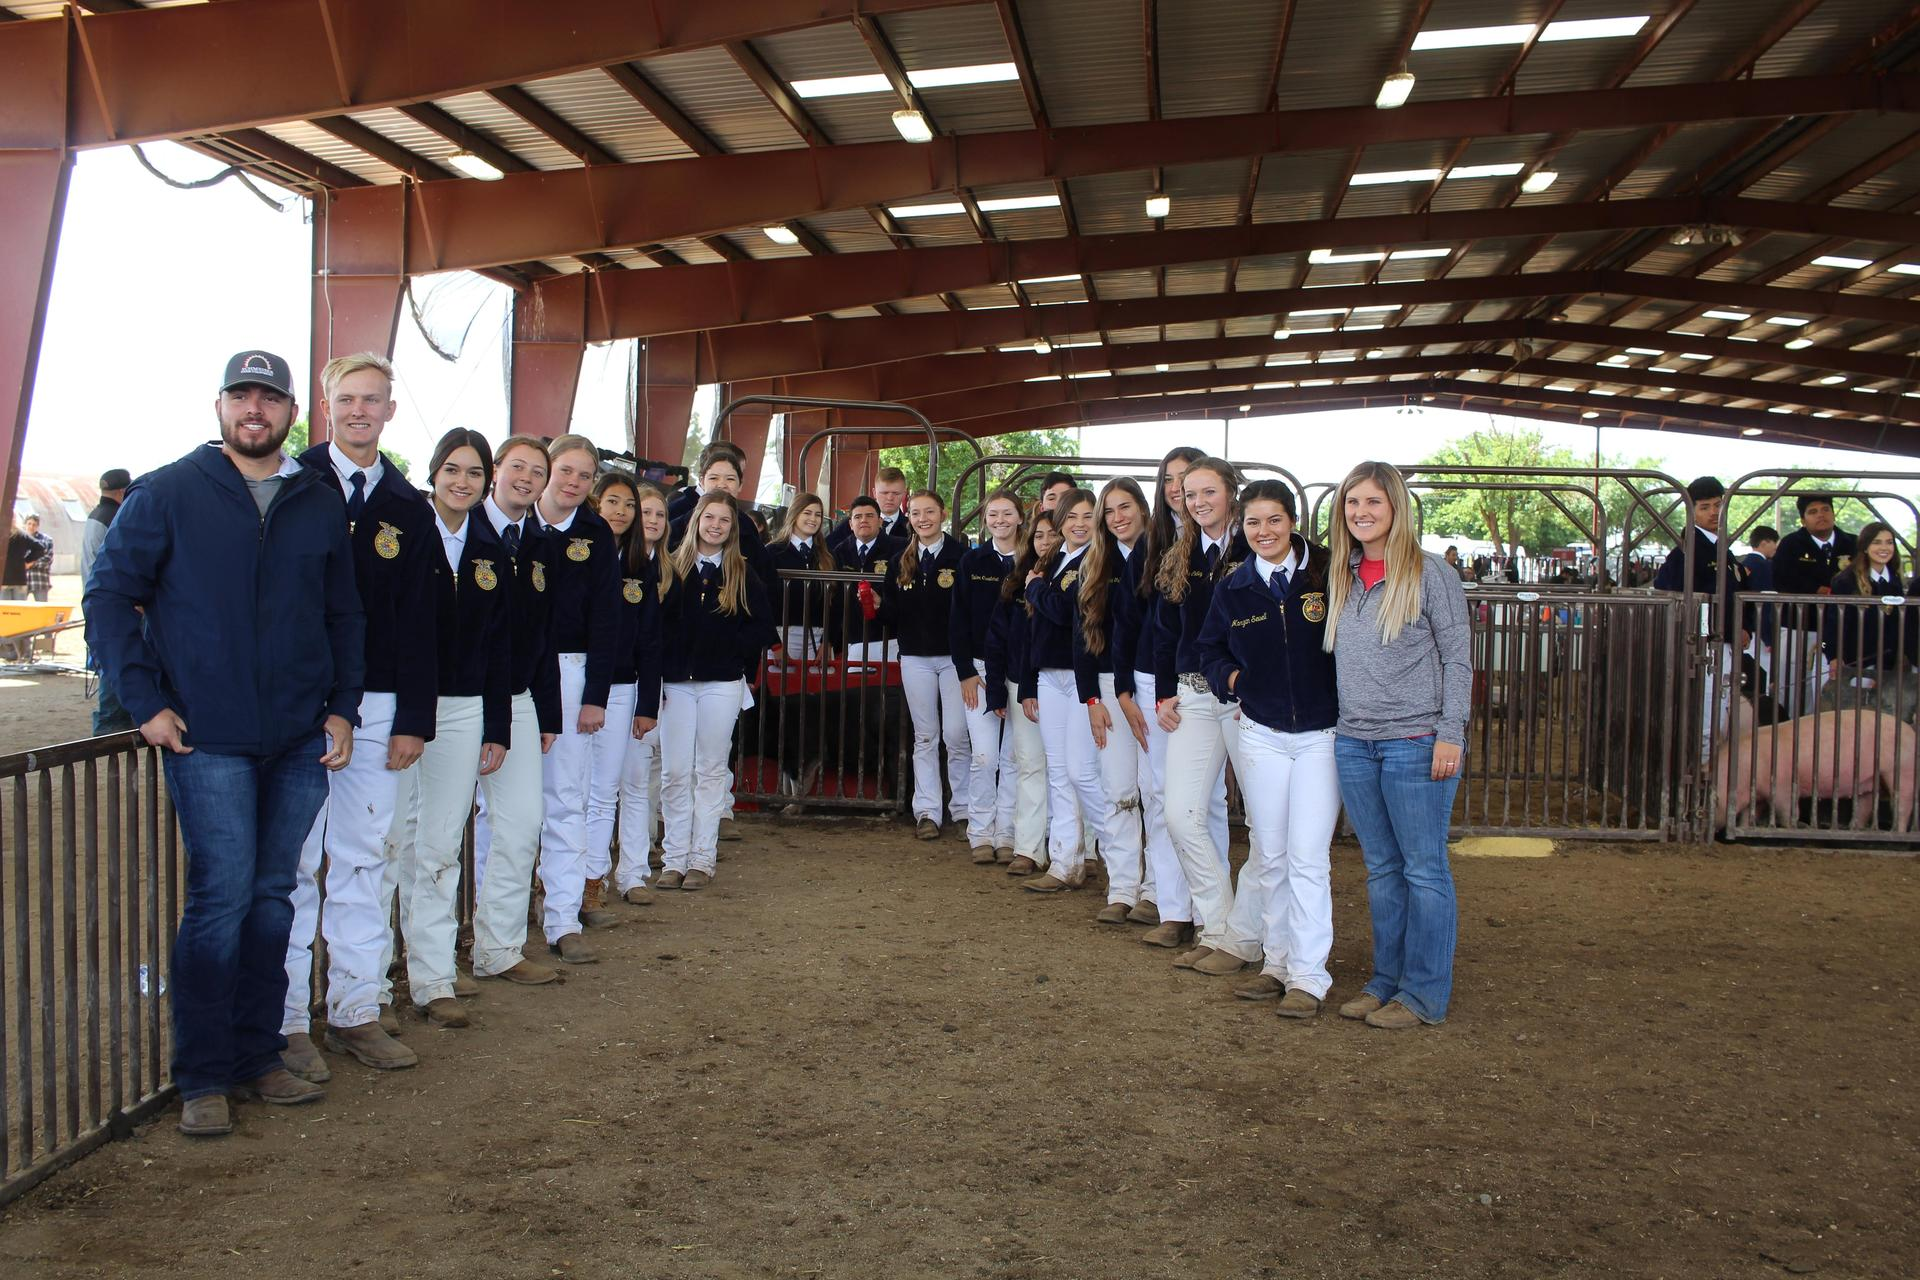 F F A students posing as a group after showing their livestock for judging.